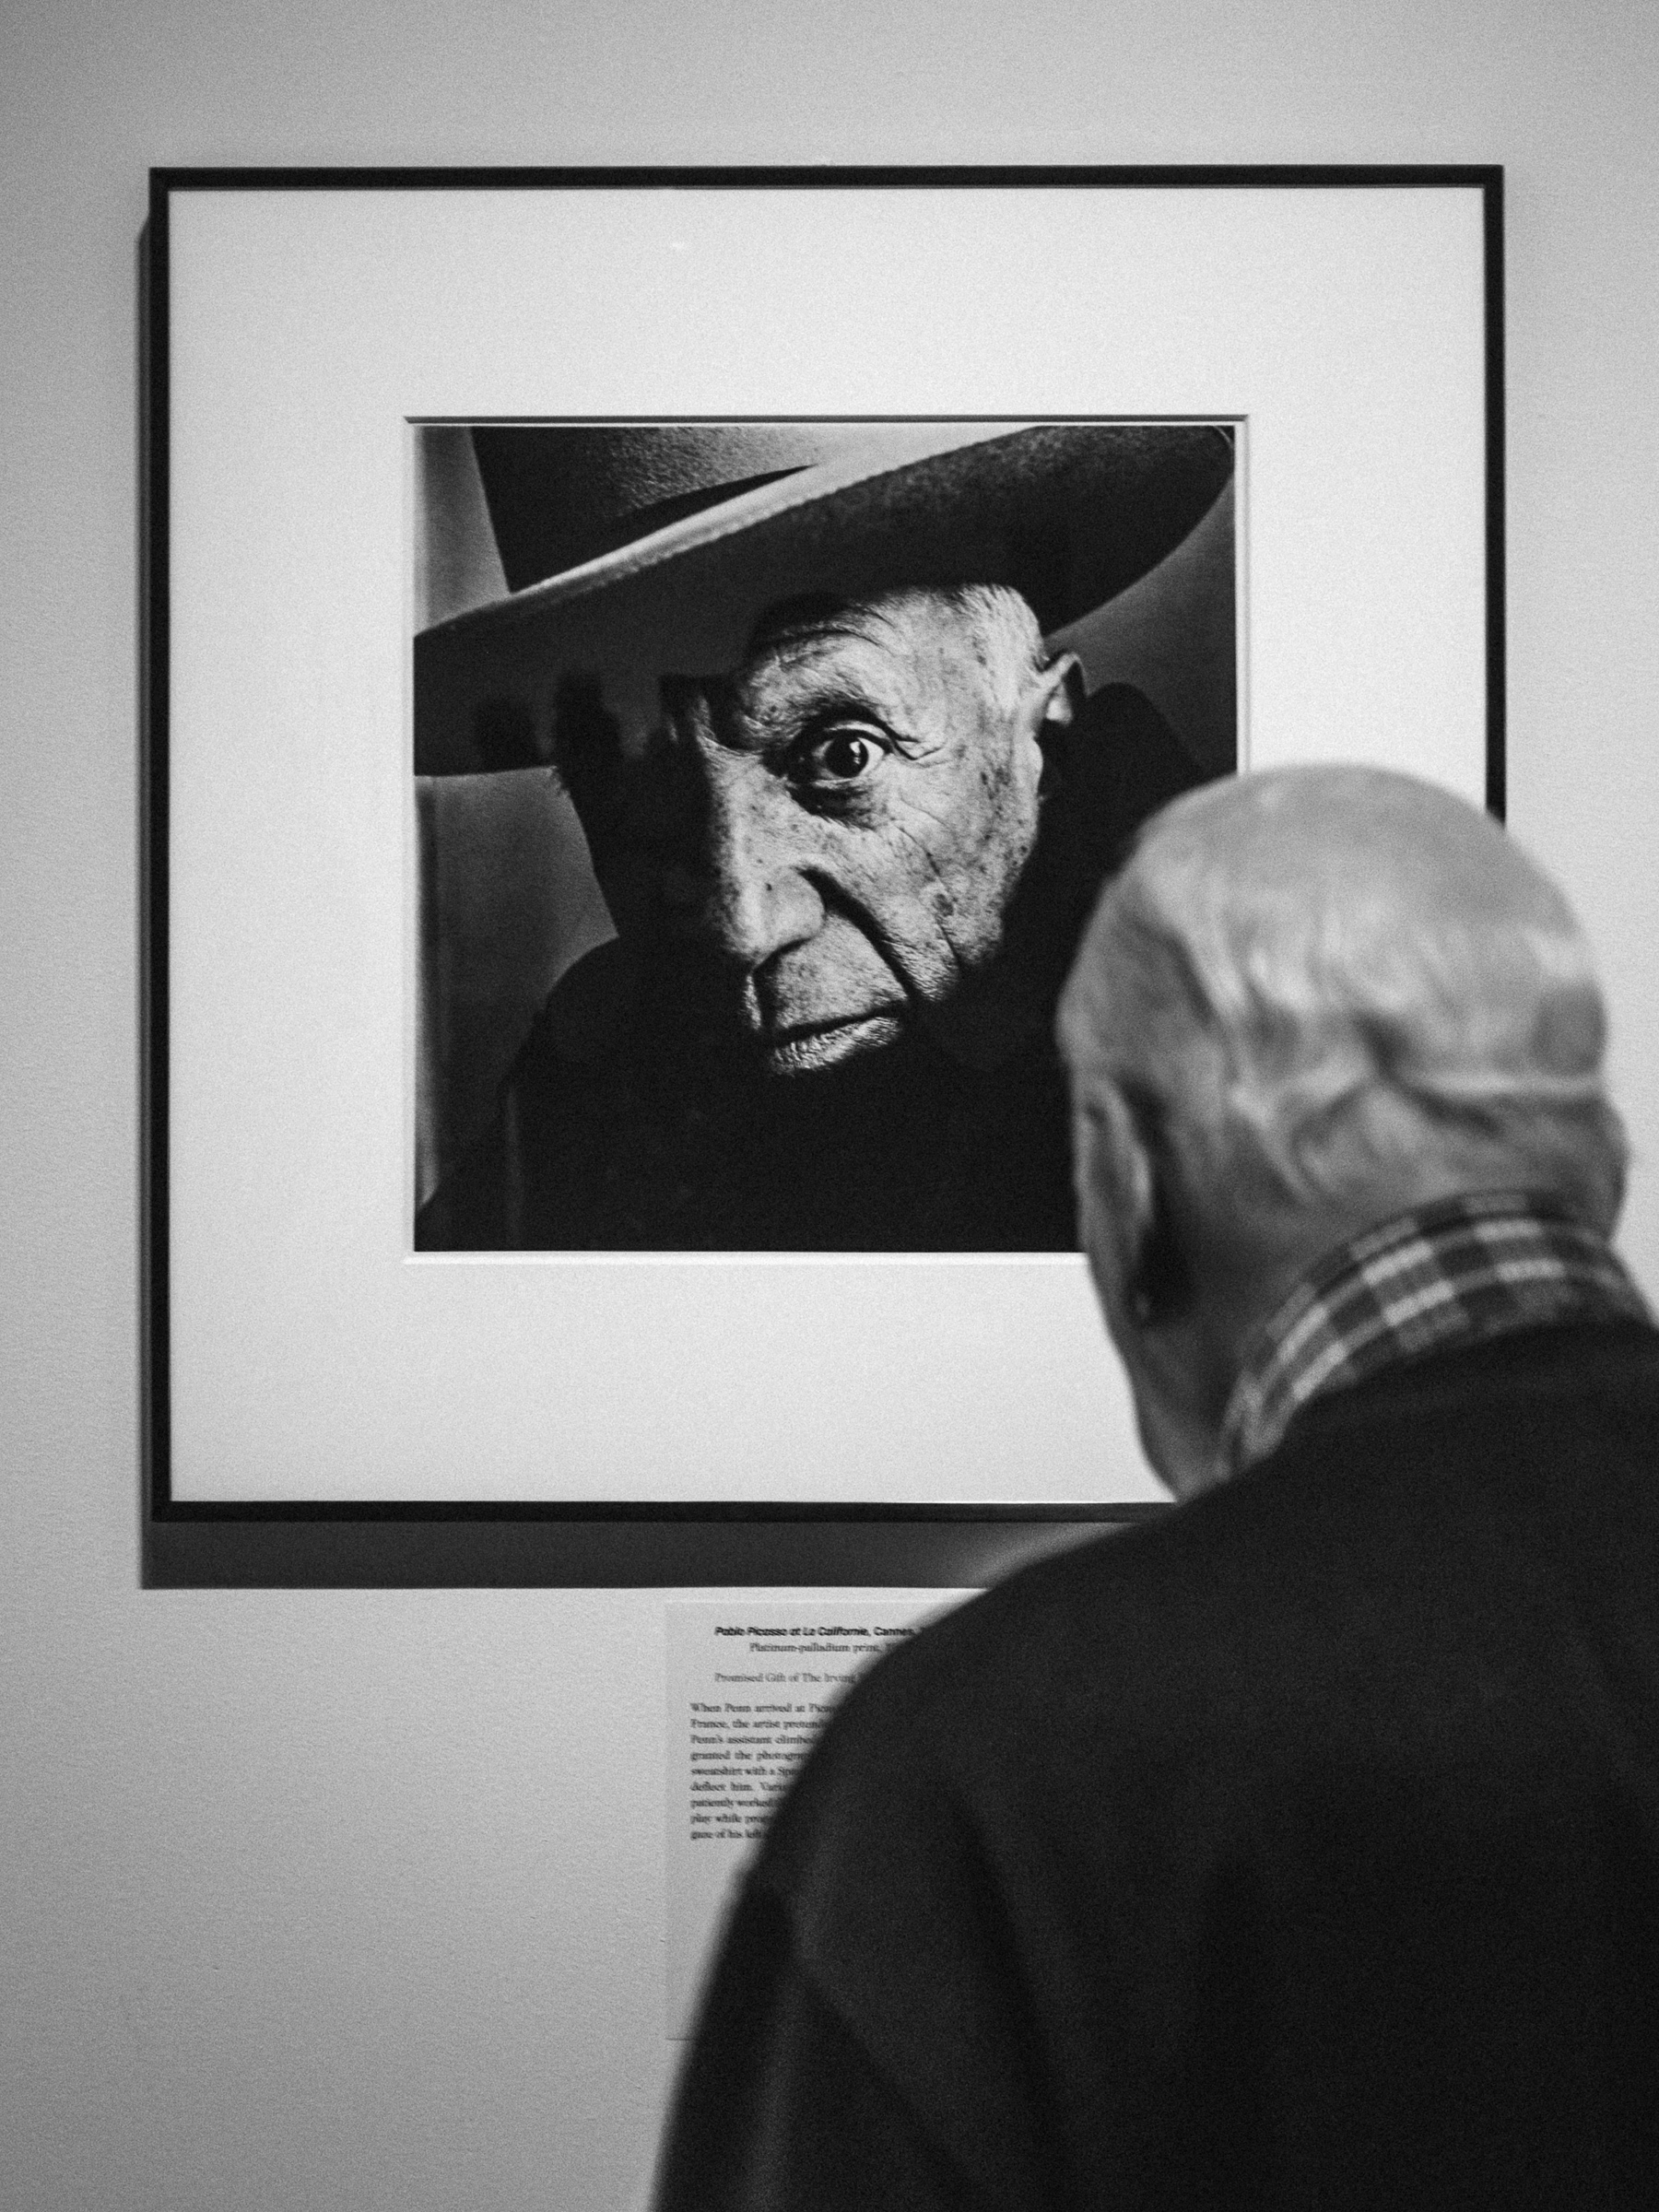 A visitor to the exhibit views Penn's famous photograph of Pablo Picasso.